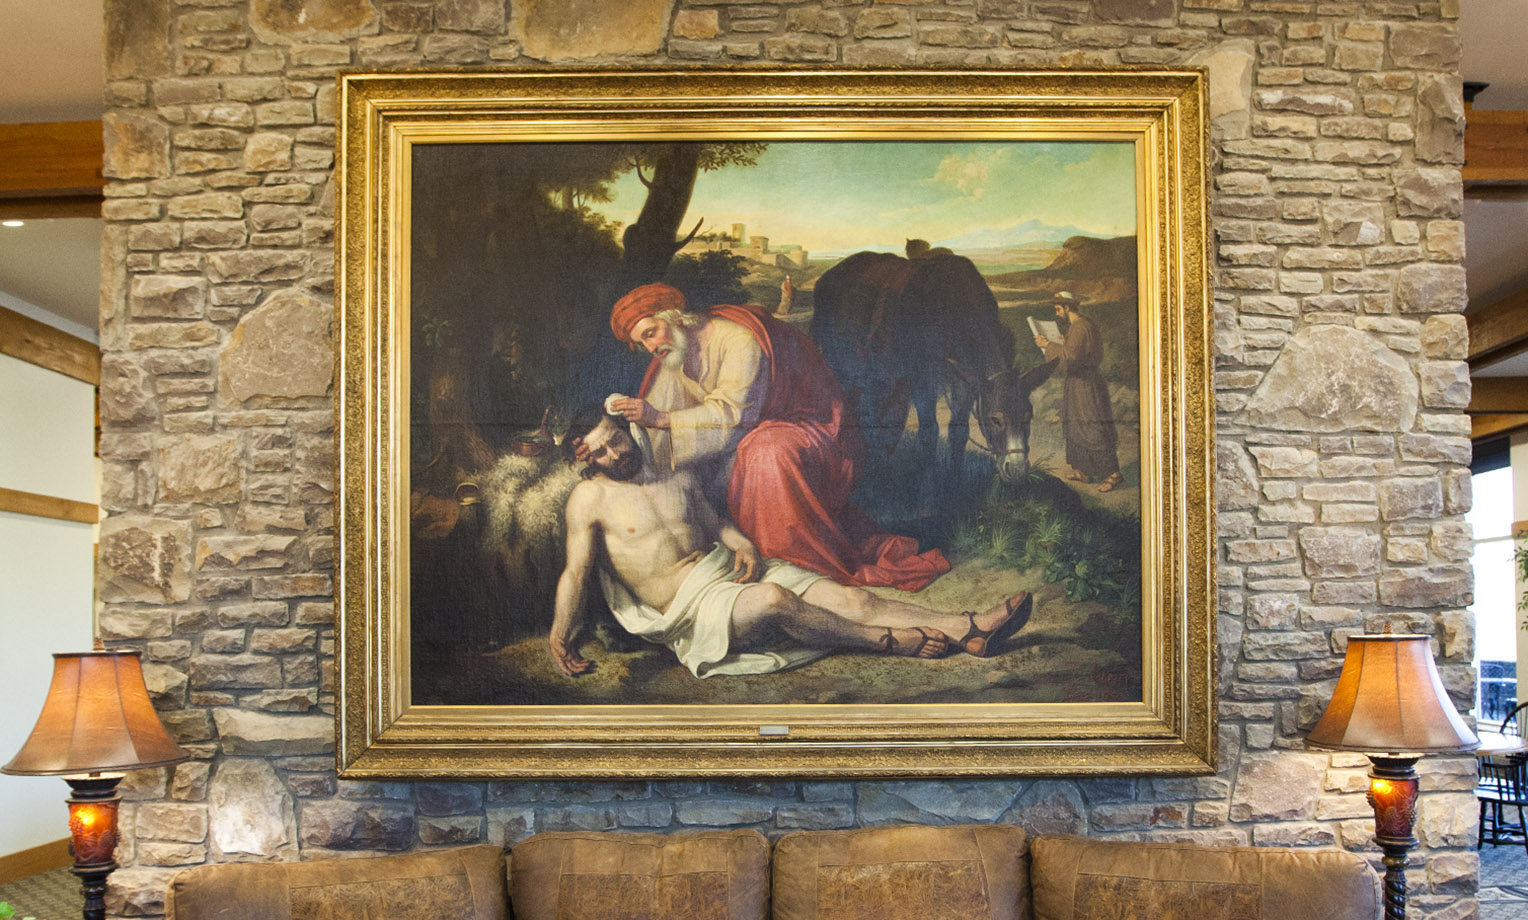 """La Caridad del Samaritano"" literally translated, ""The Charity of the Samaritan"" is an oil painting by Spaniard Jose Tapiro y Baro (1863-1913) depicting the story of the Good Samaritan from Luke 10:30-37. A gift to Samaritan's Purse in 2011 from the Gamboa Family Trust, the work of art is a reminder to all of Christ's followers to ""Go and do likewise."" This painting hangs at the entrance to the Furman Building at the ministry's international headquarters in Boone."